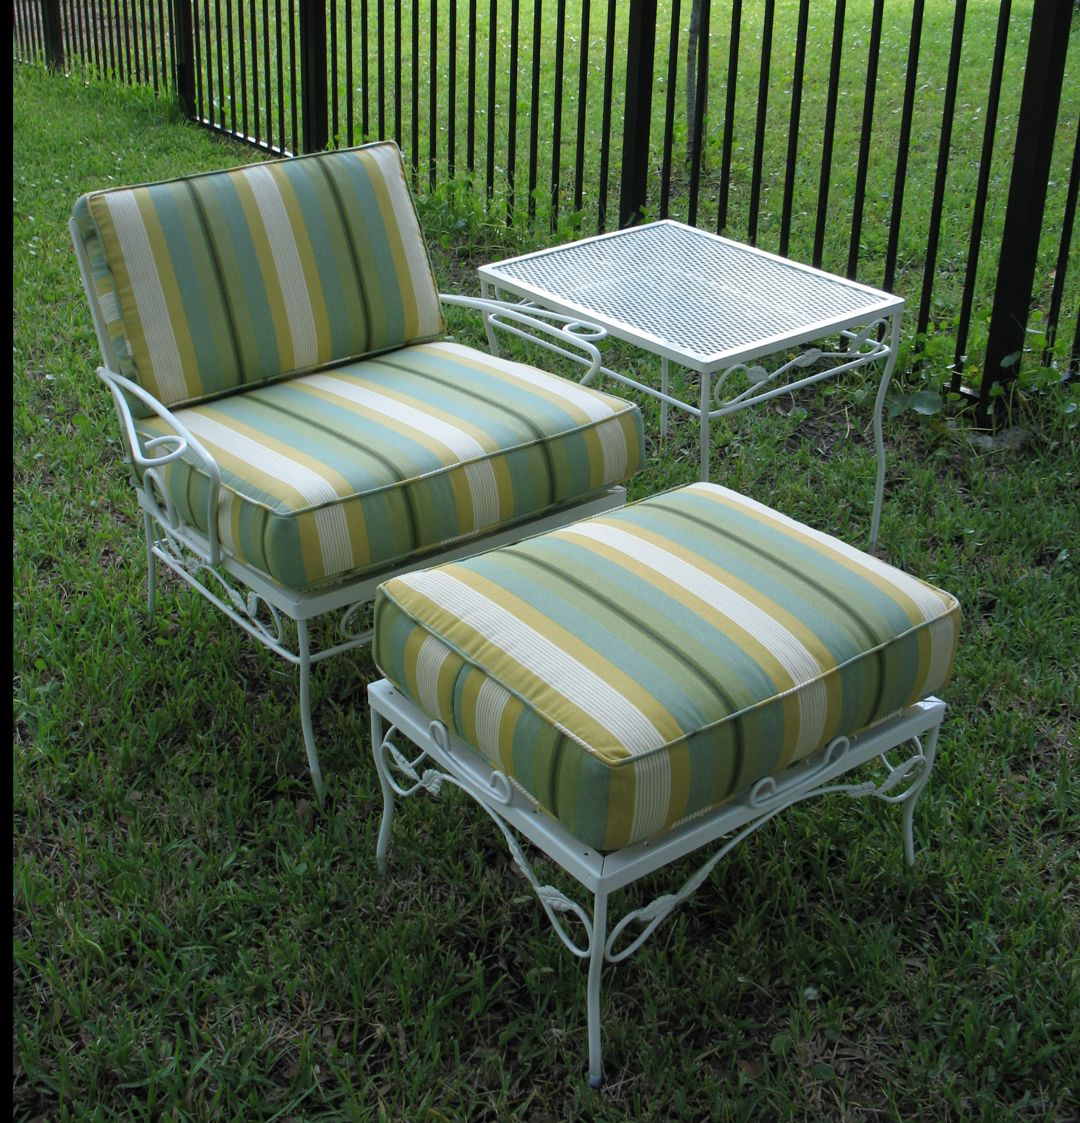 Vintage Metal Furniture | Vintage Patio Furniture | Mulberry Street